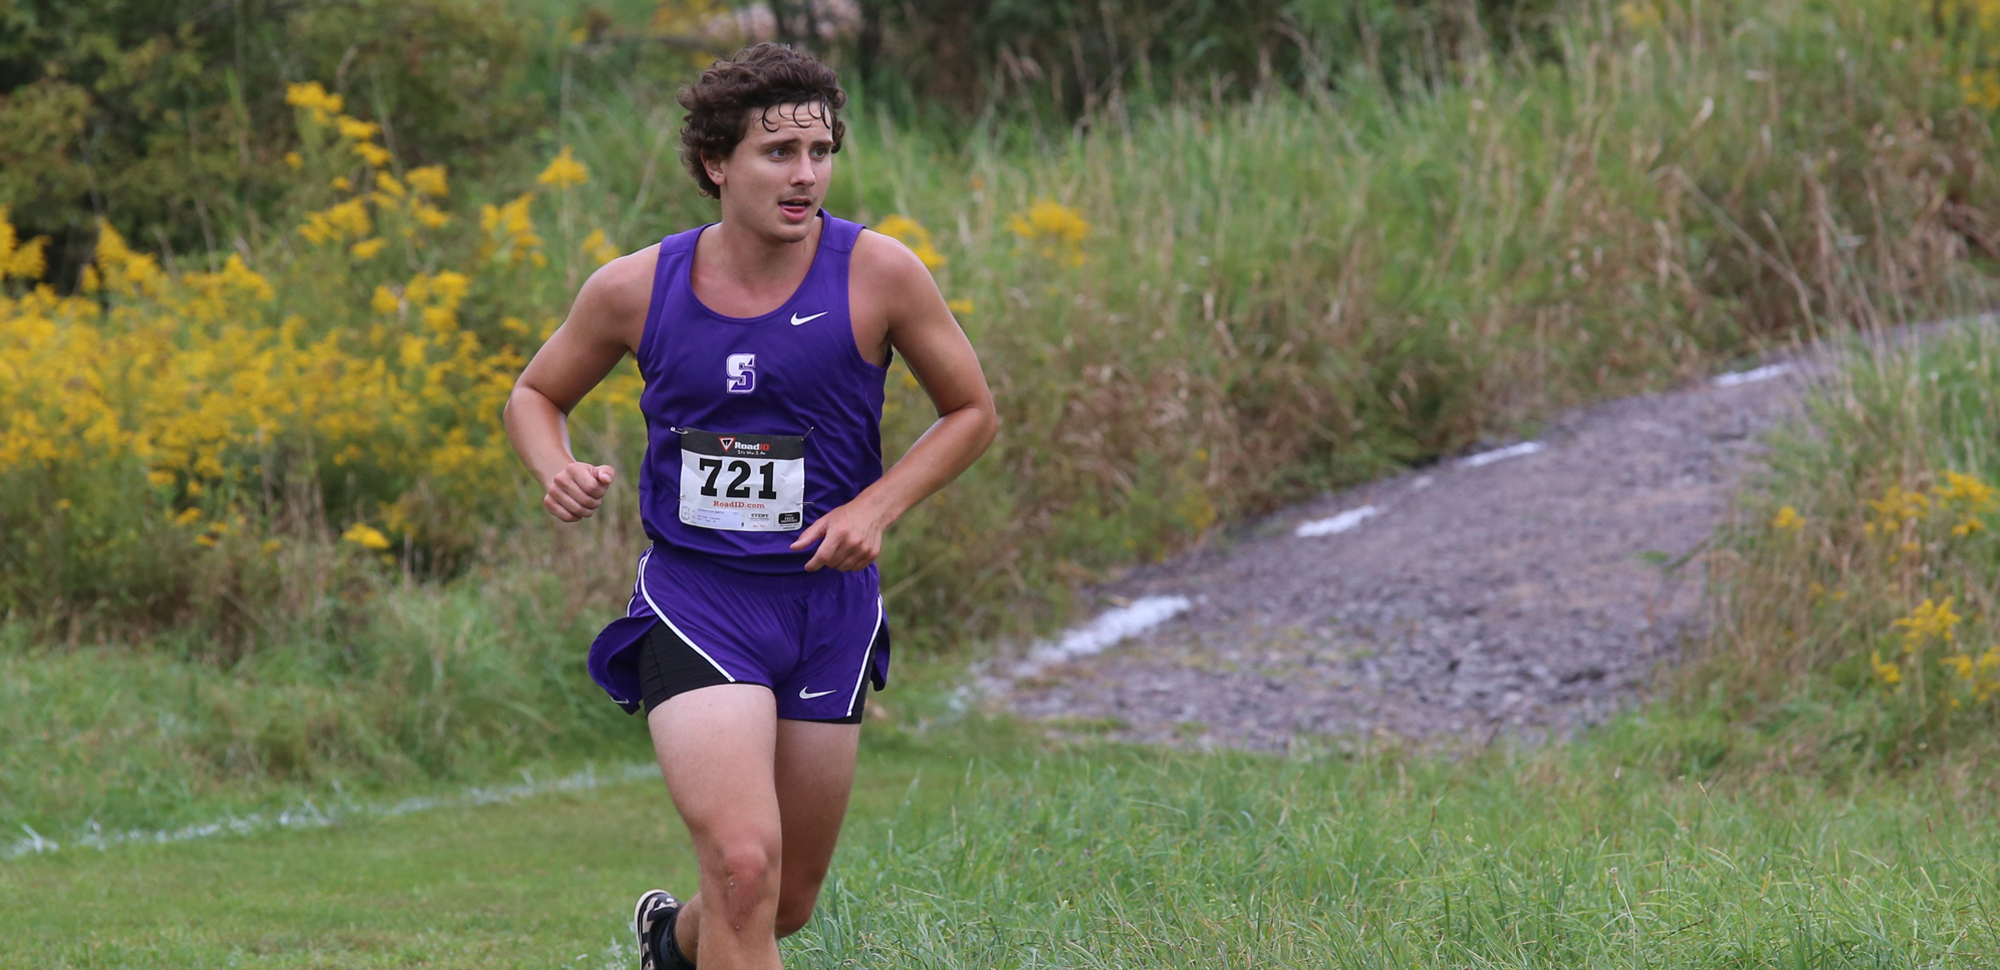 Senior Schuyler Smith finished sixth to lead the Royals at the Cougar Classic on Saturday.